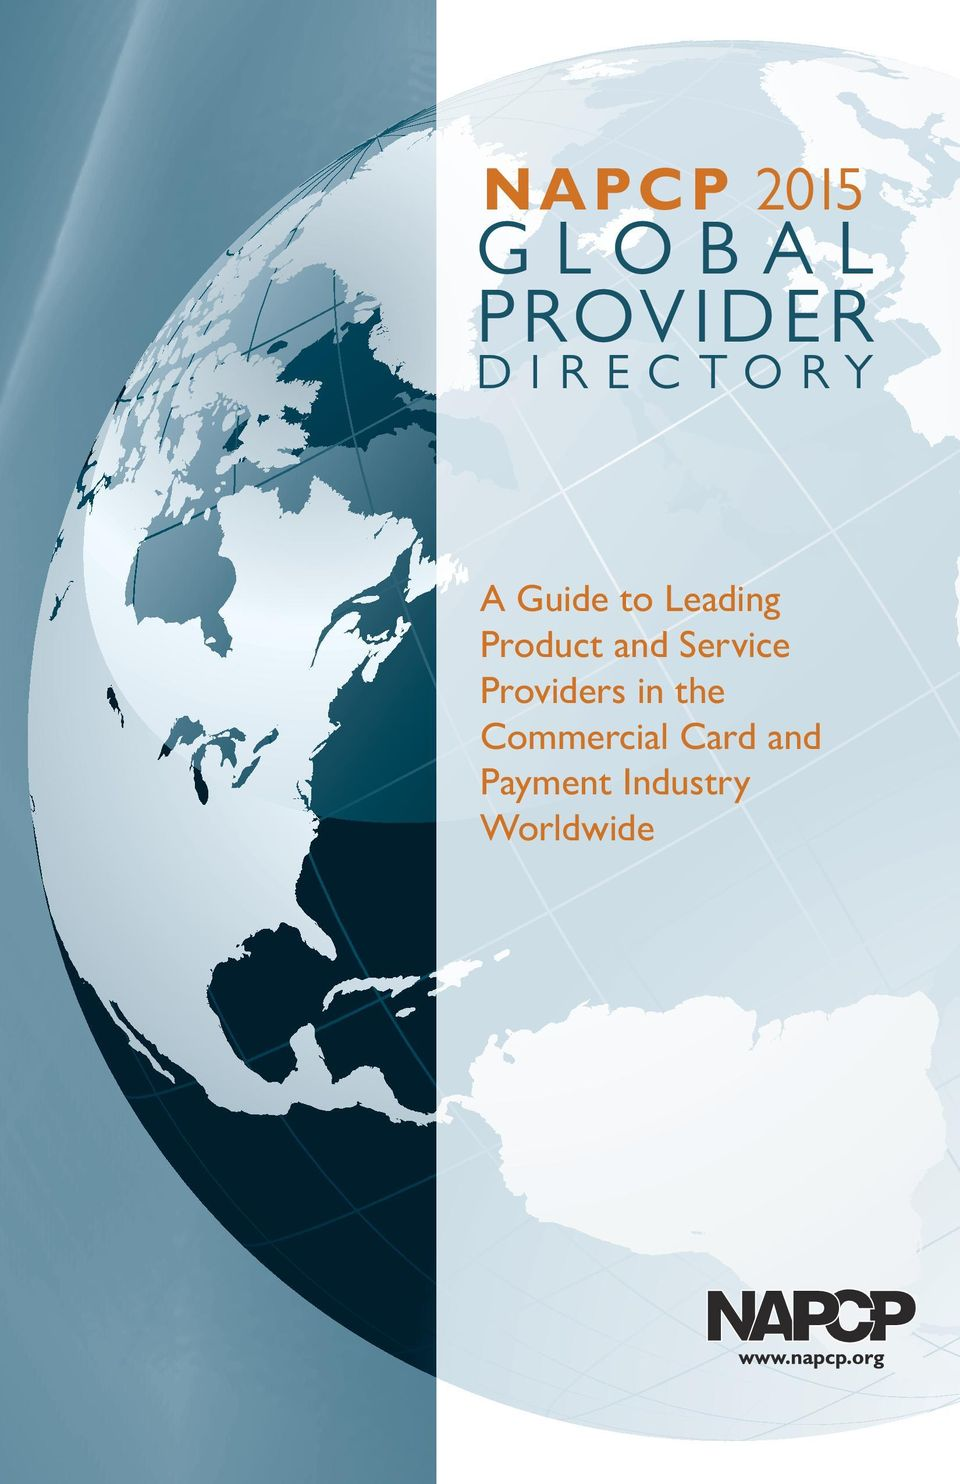 Product and Service Providers in